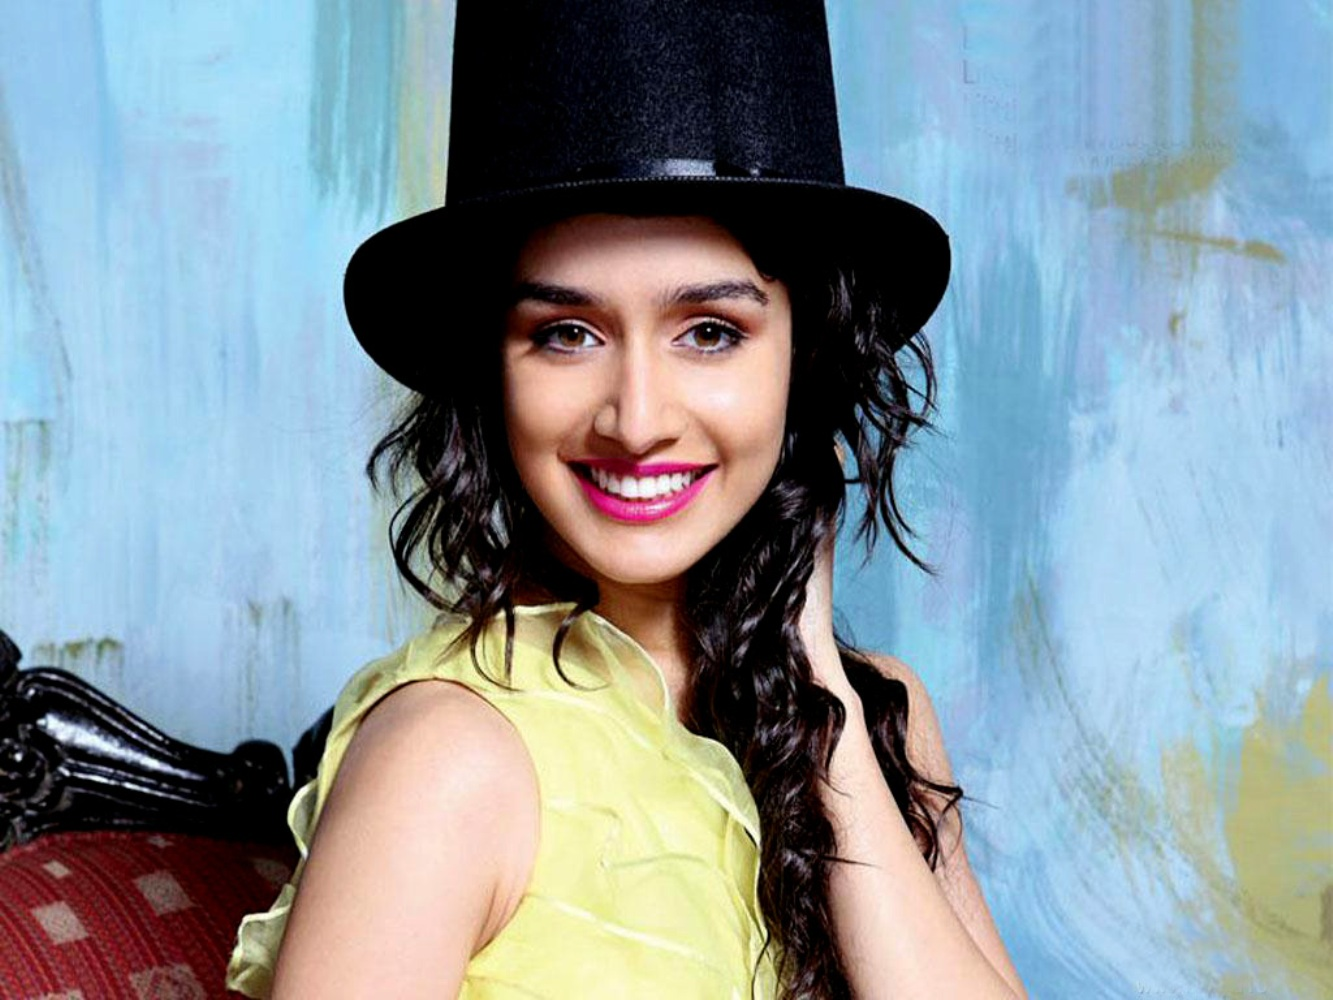 Shraddha Kapoor Cute HD Wallpapers 2014 1333x1000